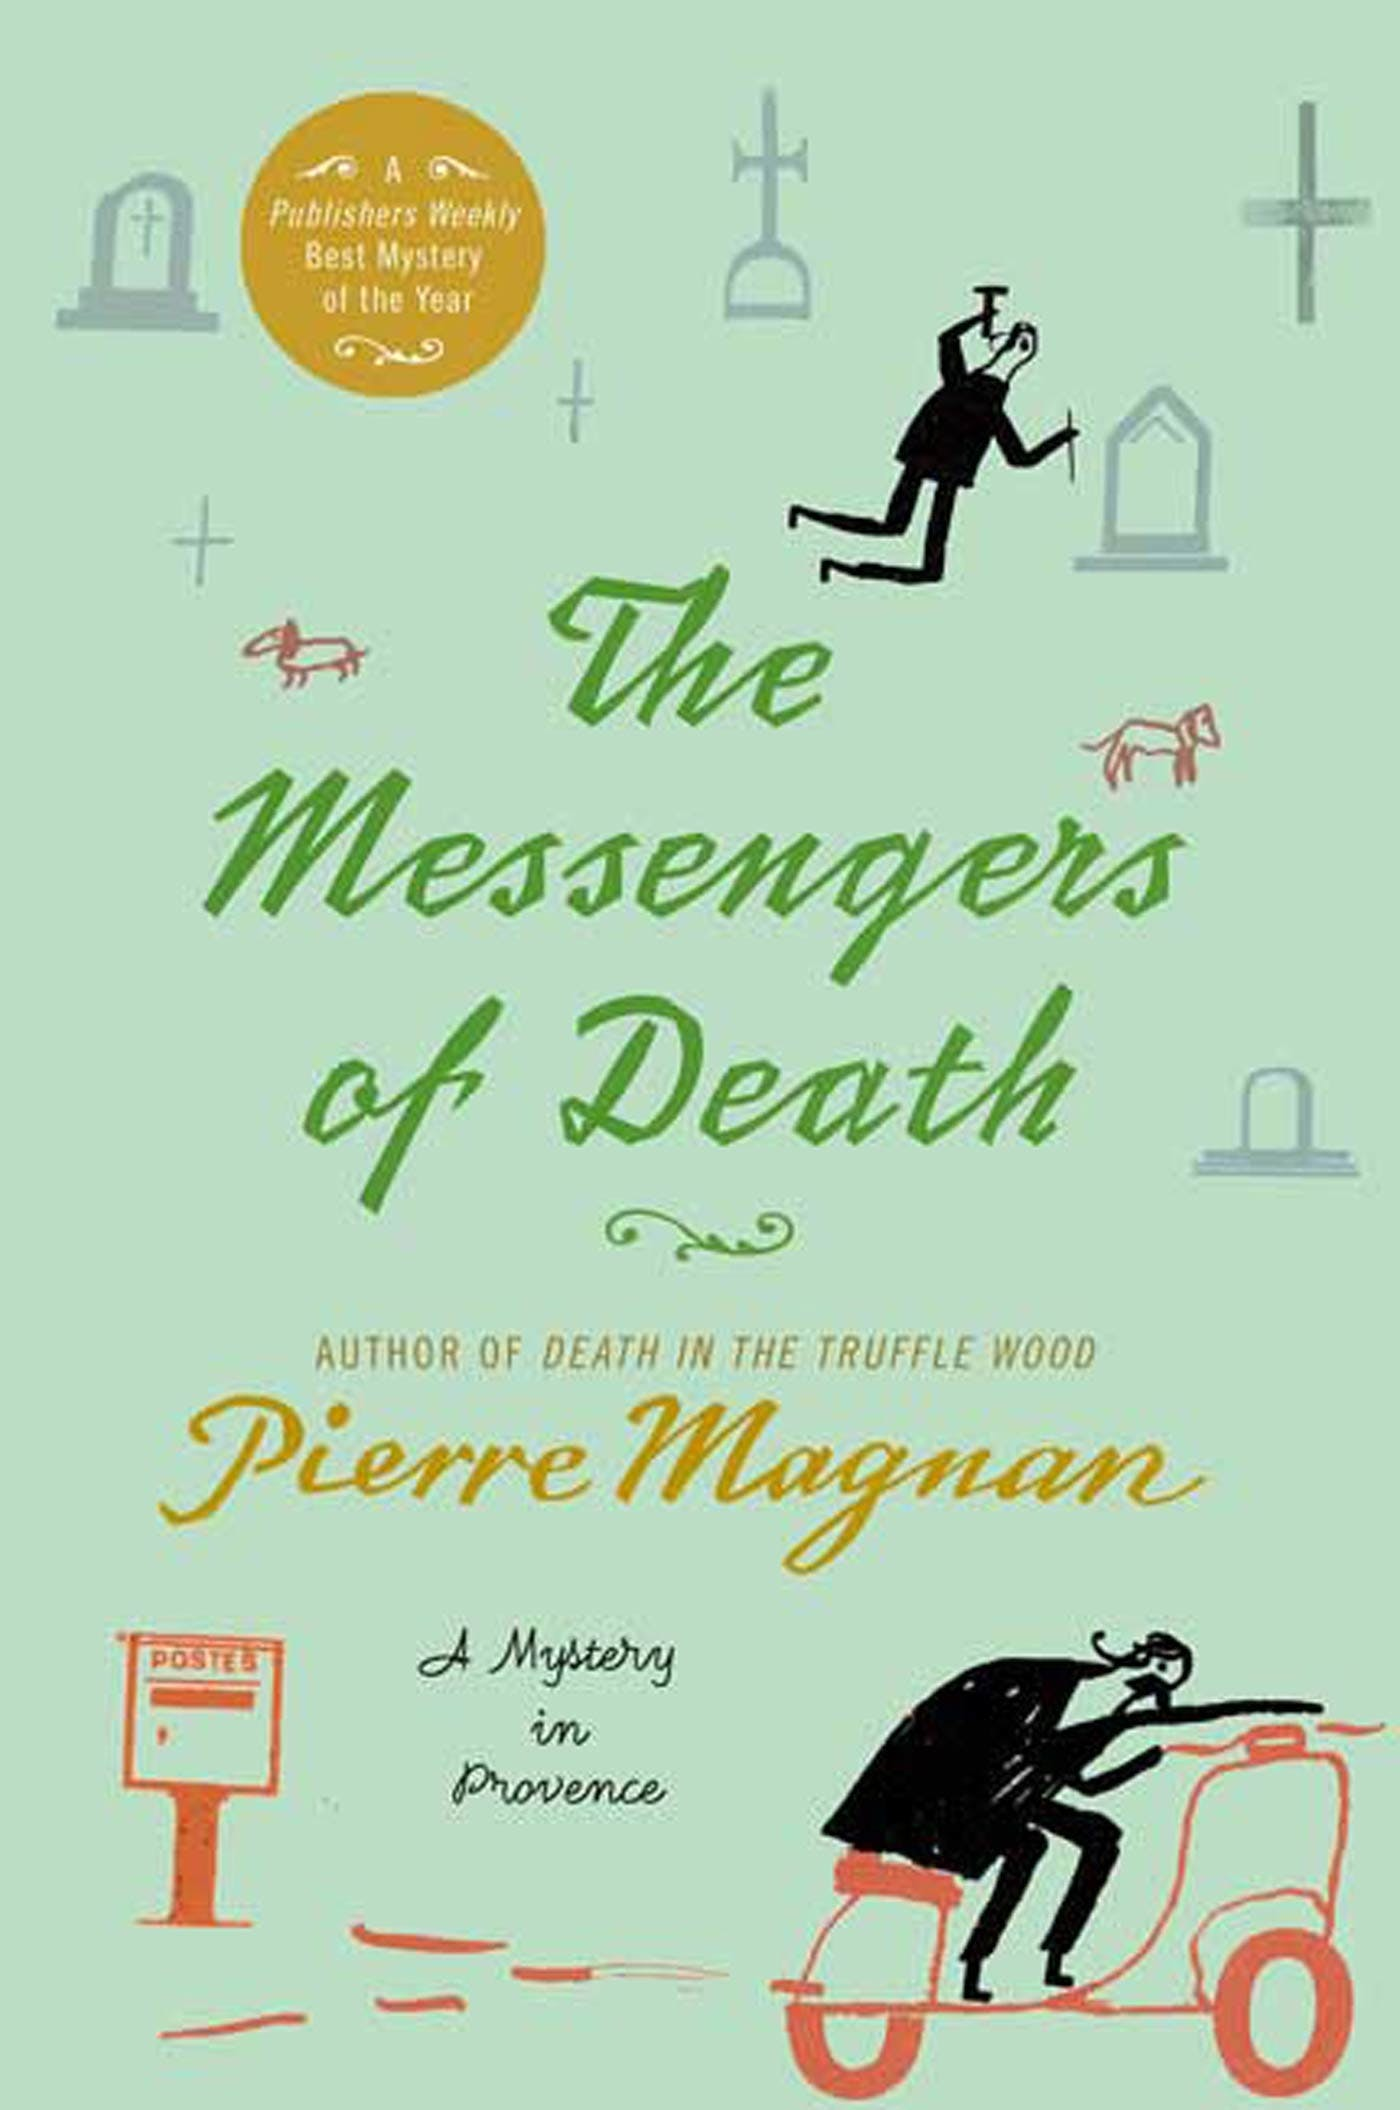 Image of The Messengers of Death